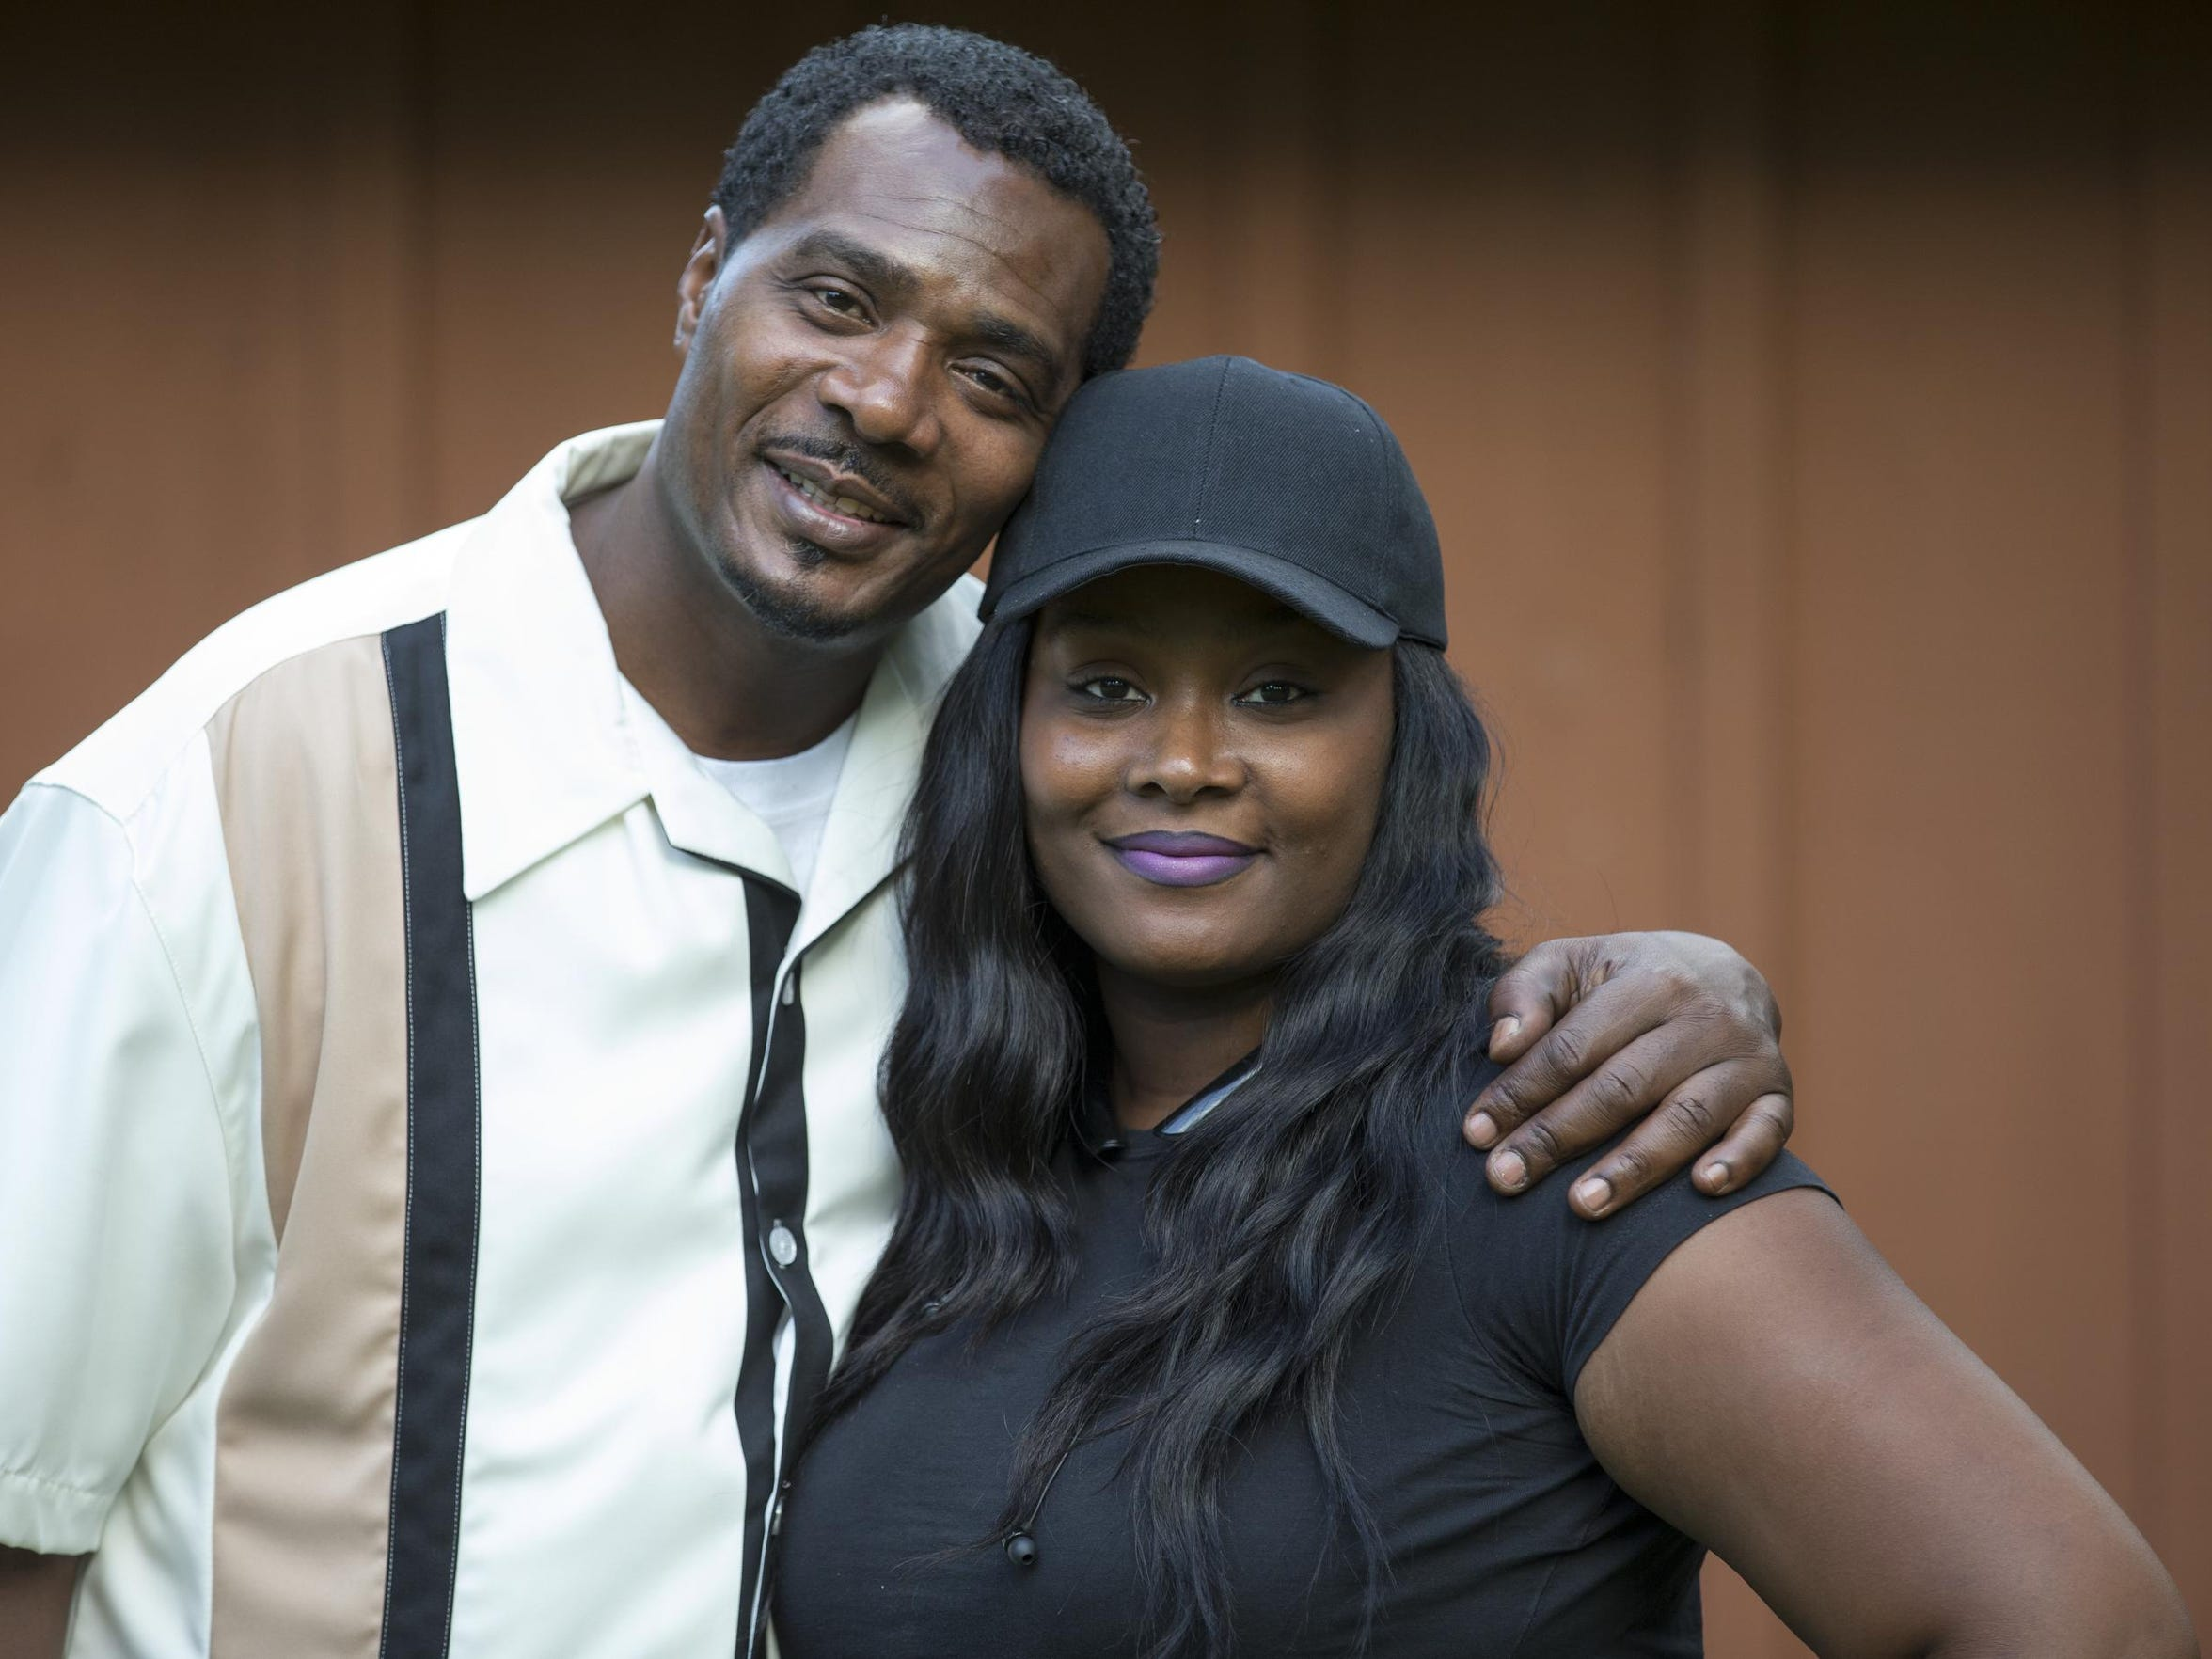 Keith Cooper, with his daughter, Lakeisha Cooper, at